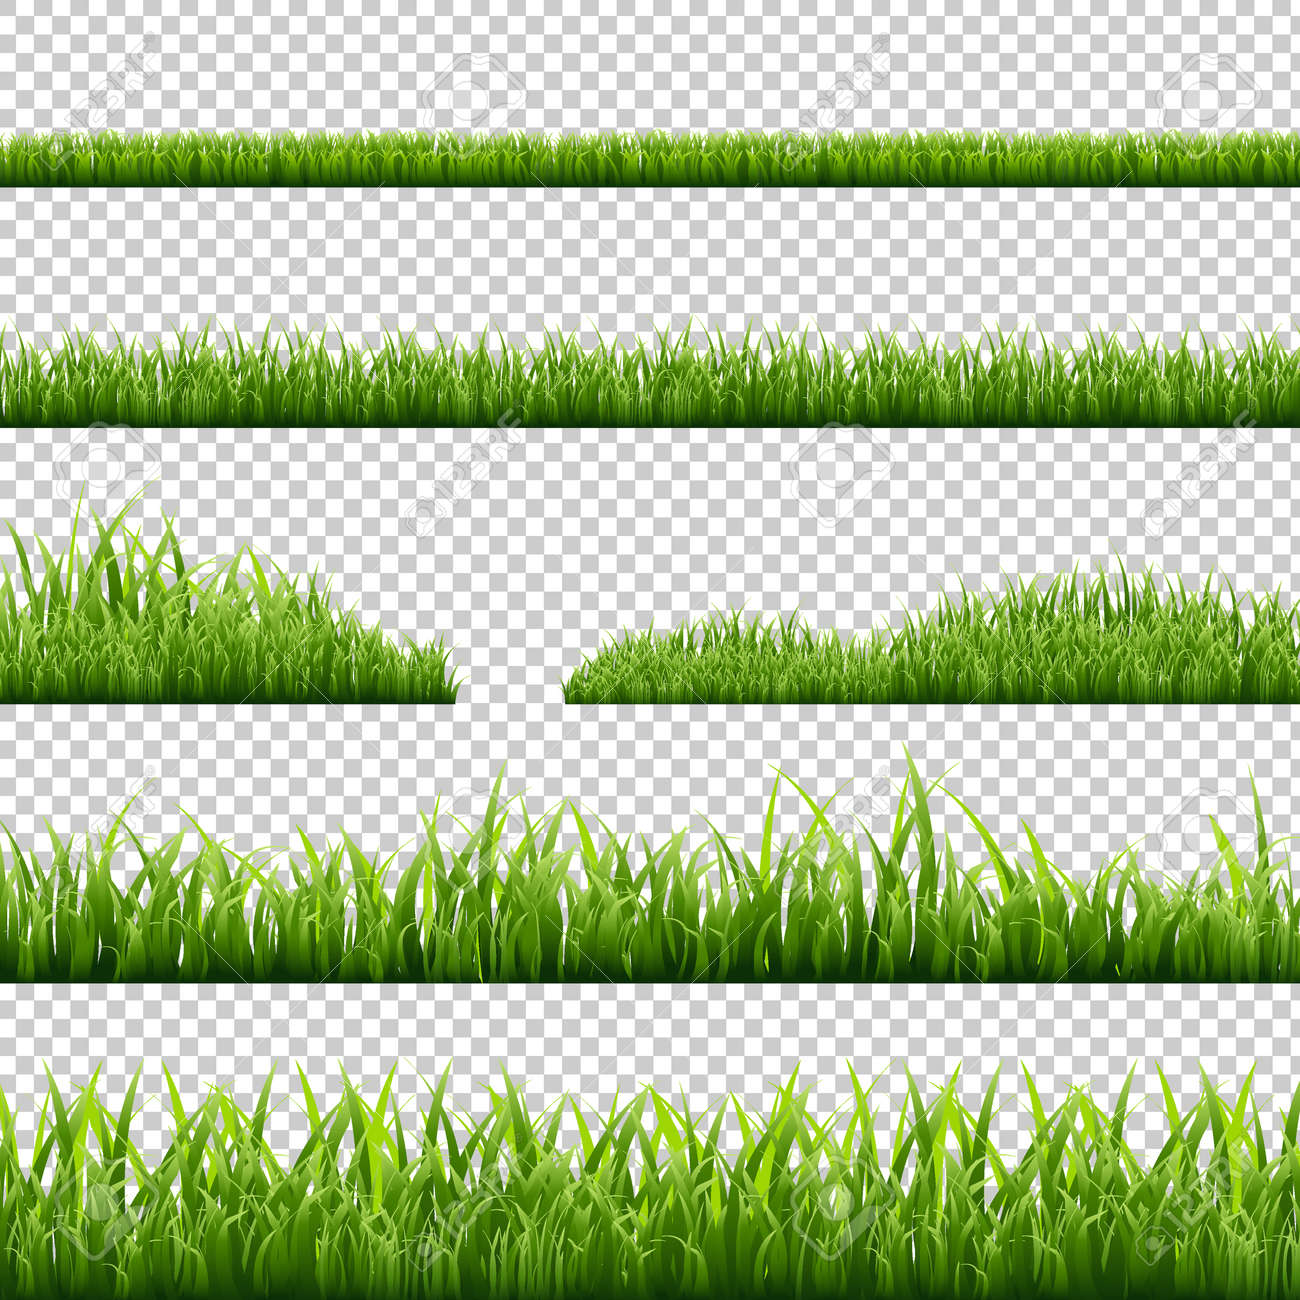 Grass Background Grass Borders Set Isolated On Transparent Background Vector Illustration Stock Vector 56875701 Schemecolorcom Grass Borders Set Isolated On Transparent Background Vector